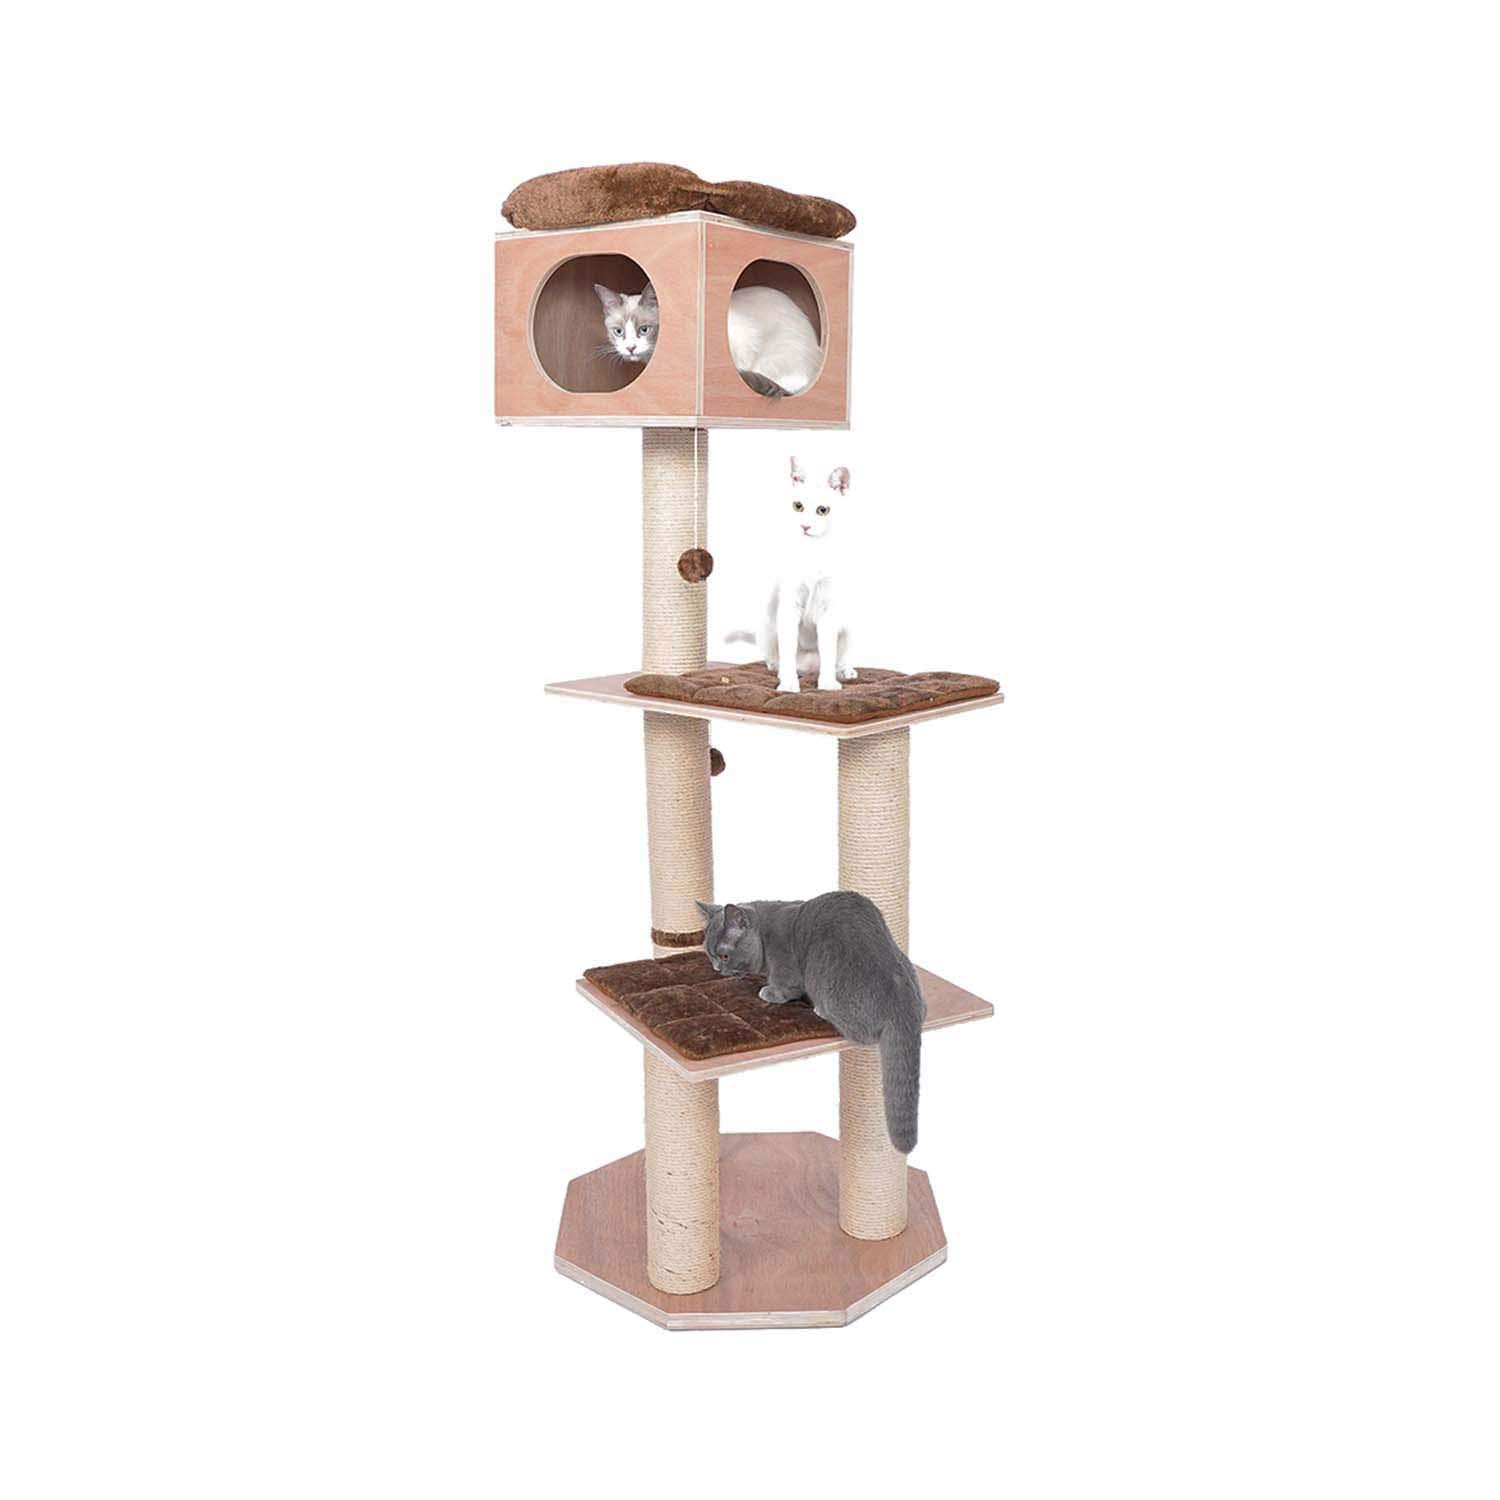 60cm60cm165cm Siler Cat Tree, Large Cat Climbing Frame Sisal Pillar with Cat House and Observation Deck Cat Activity Center Cat Scratch Board SL-040 (Size   60cm60cm165cm)